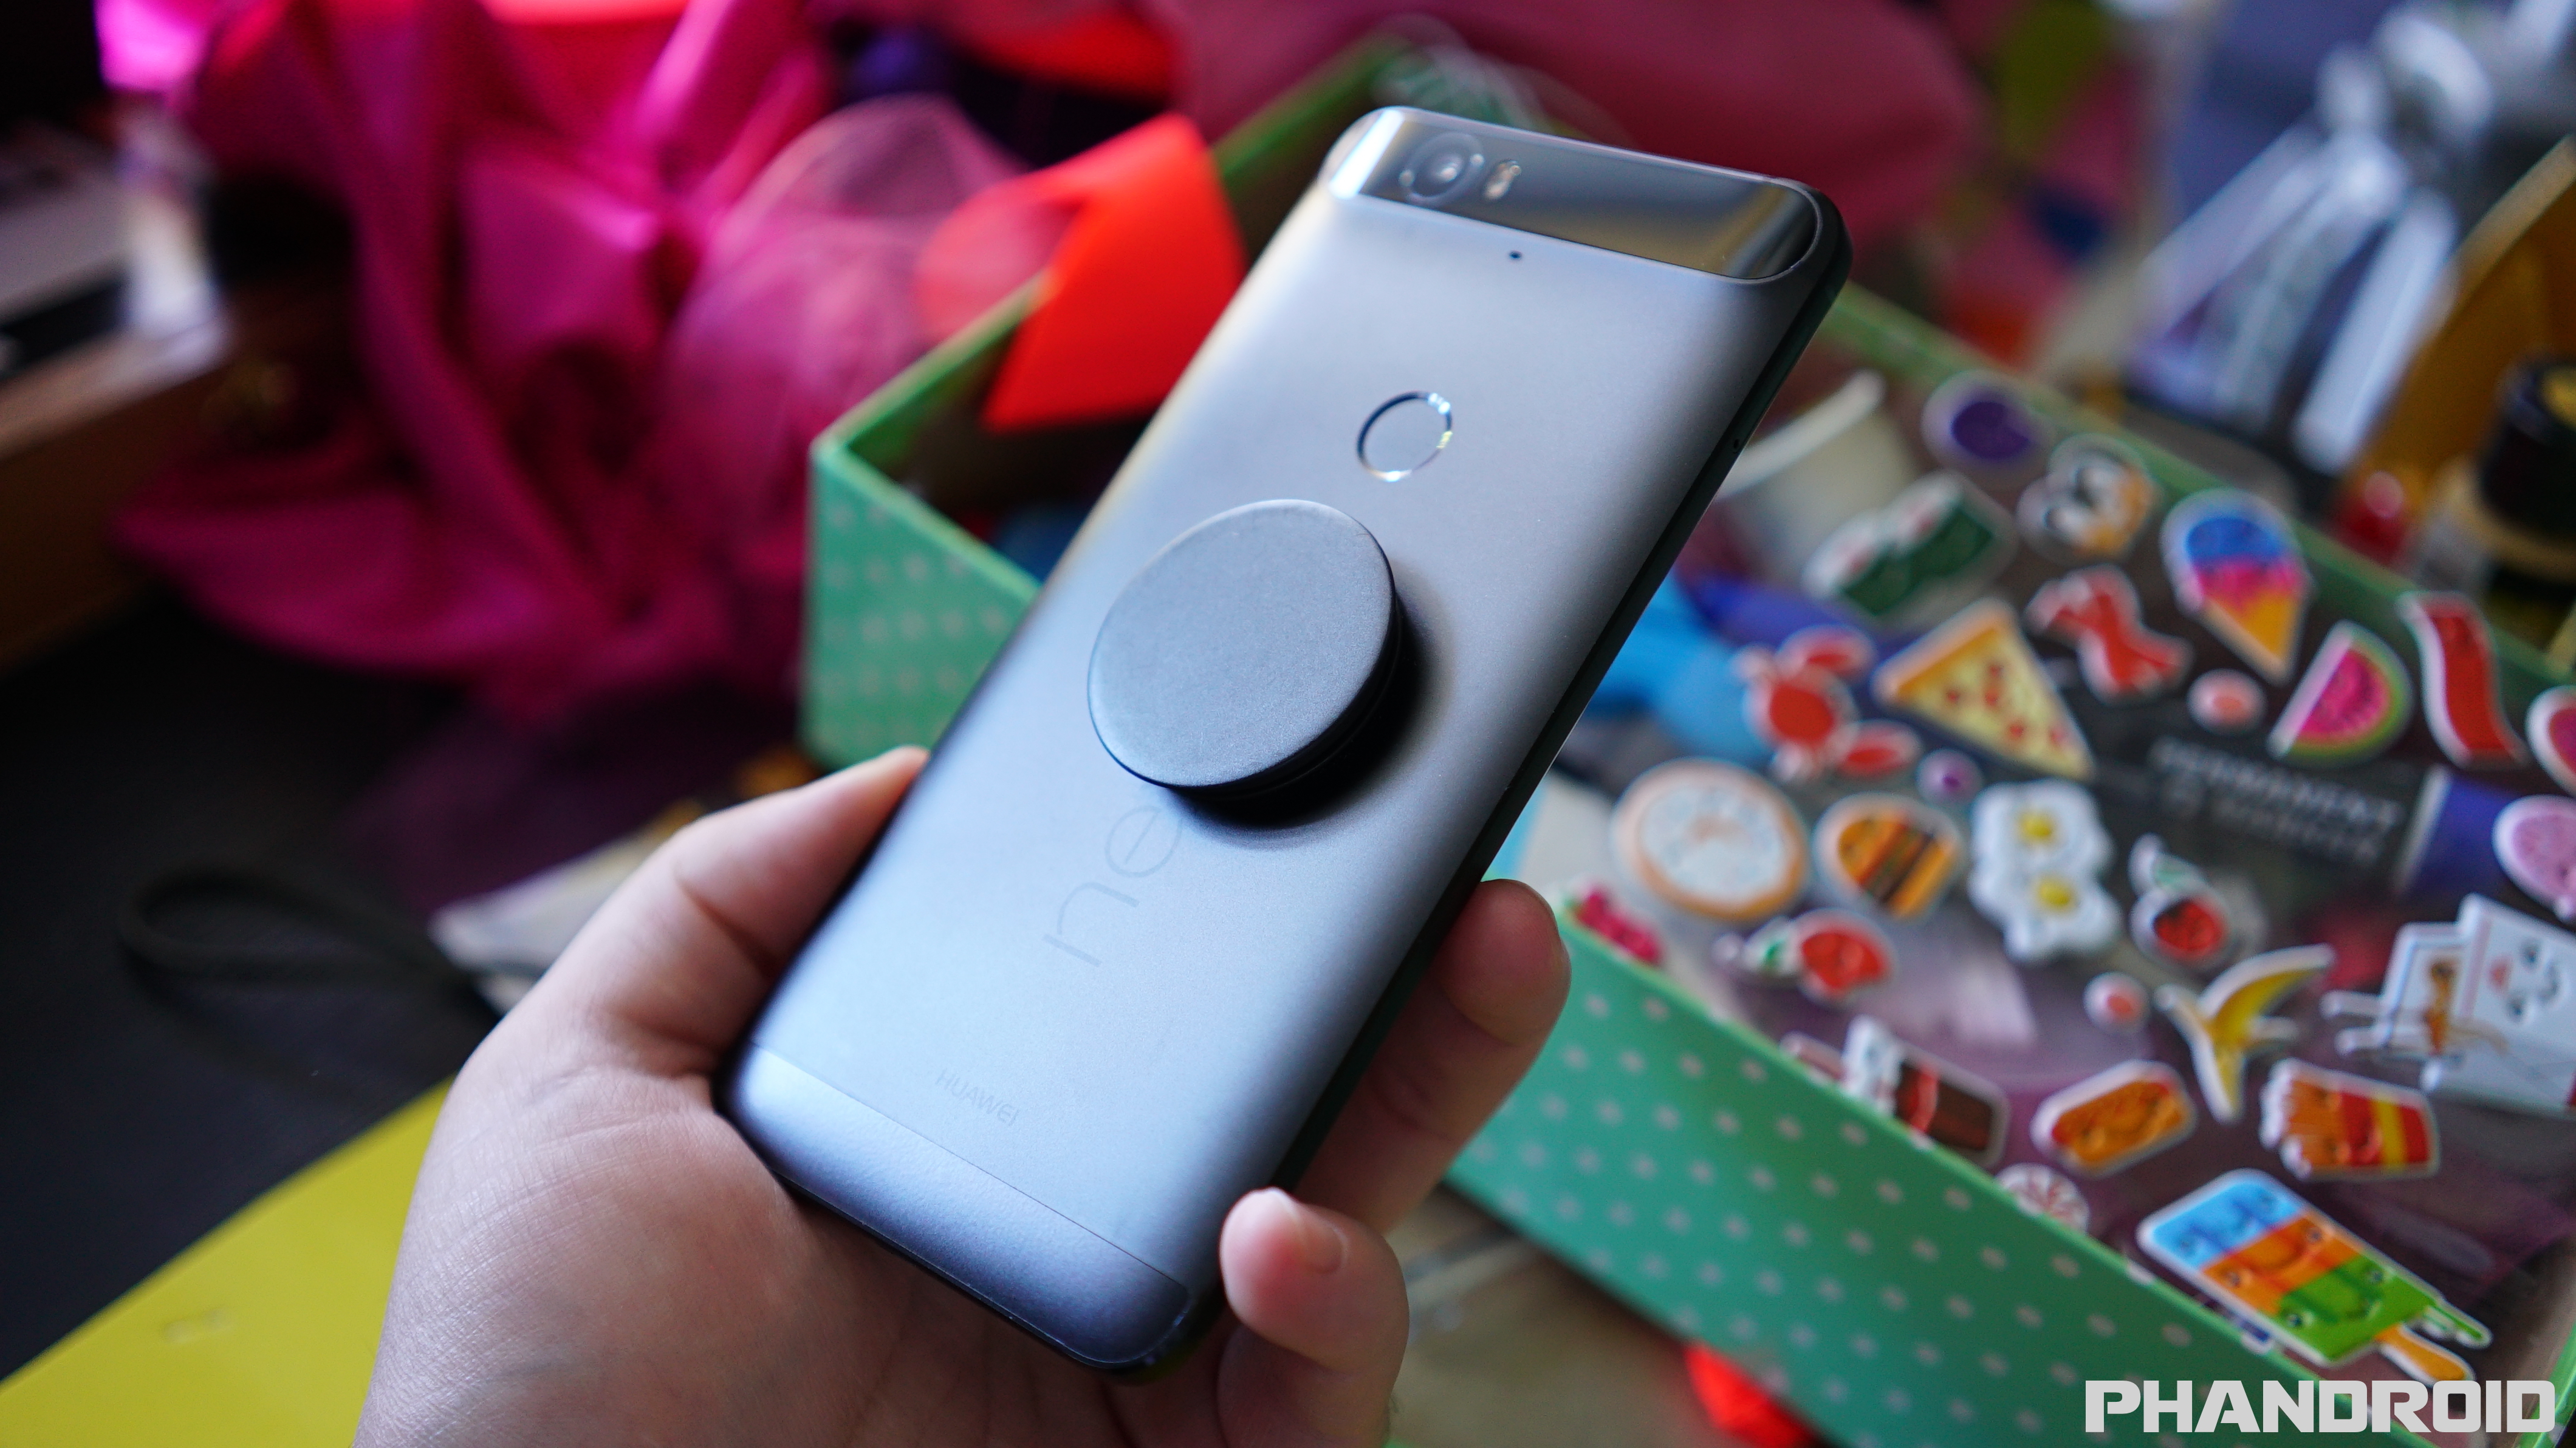 Popsocket Makes Nexus 6p Easy To Use With 1 Hand